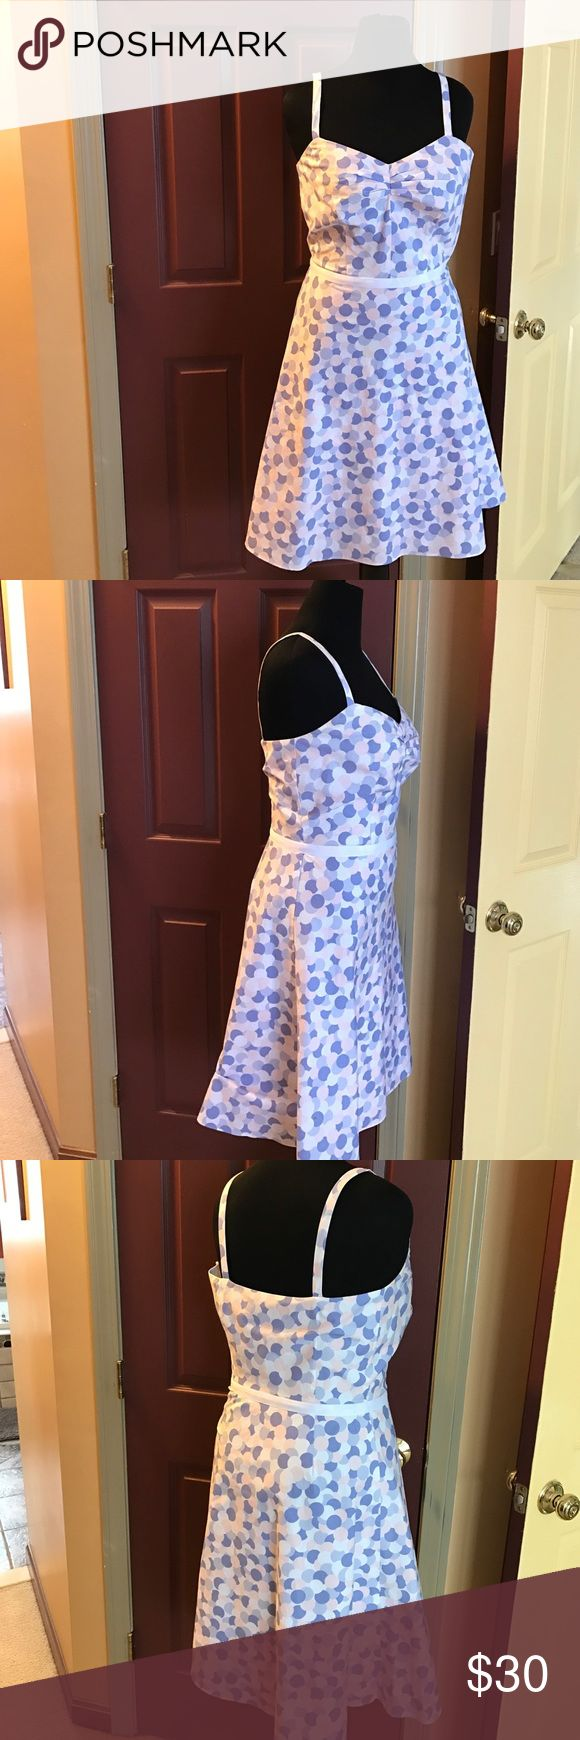 Ann Taylor Loft Factory Store size 10 dress Beautiful pink, purple & white polka dot dress worn only once.  Two spots, shown in pictures, not very noticeable unless you're really looking. Ann Taylor  Dresses Midi